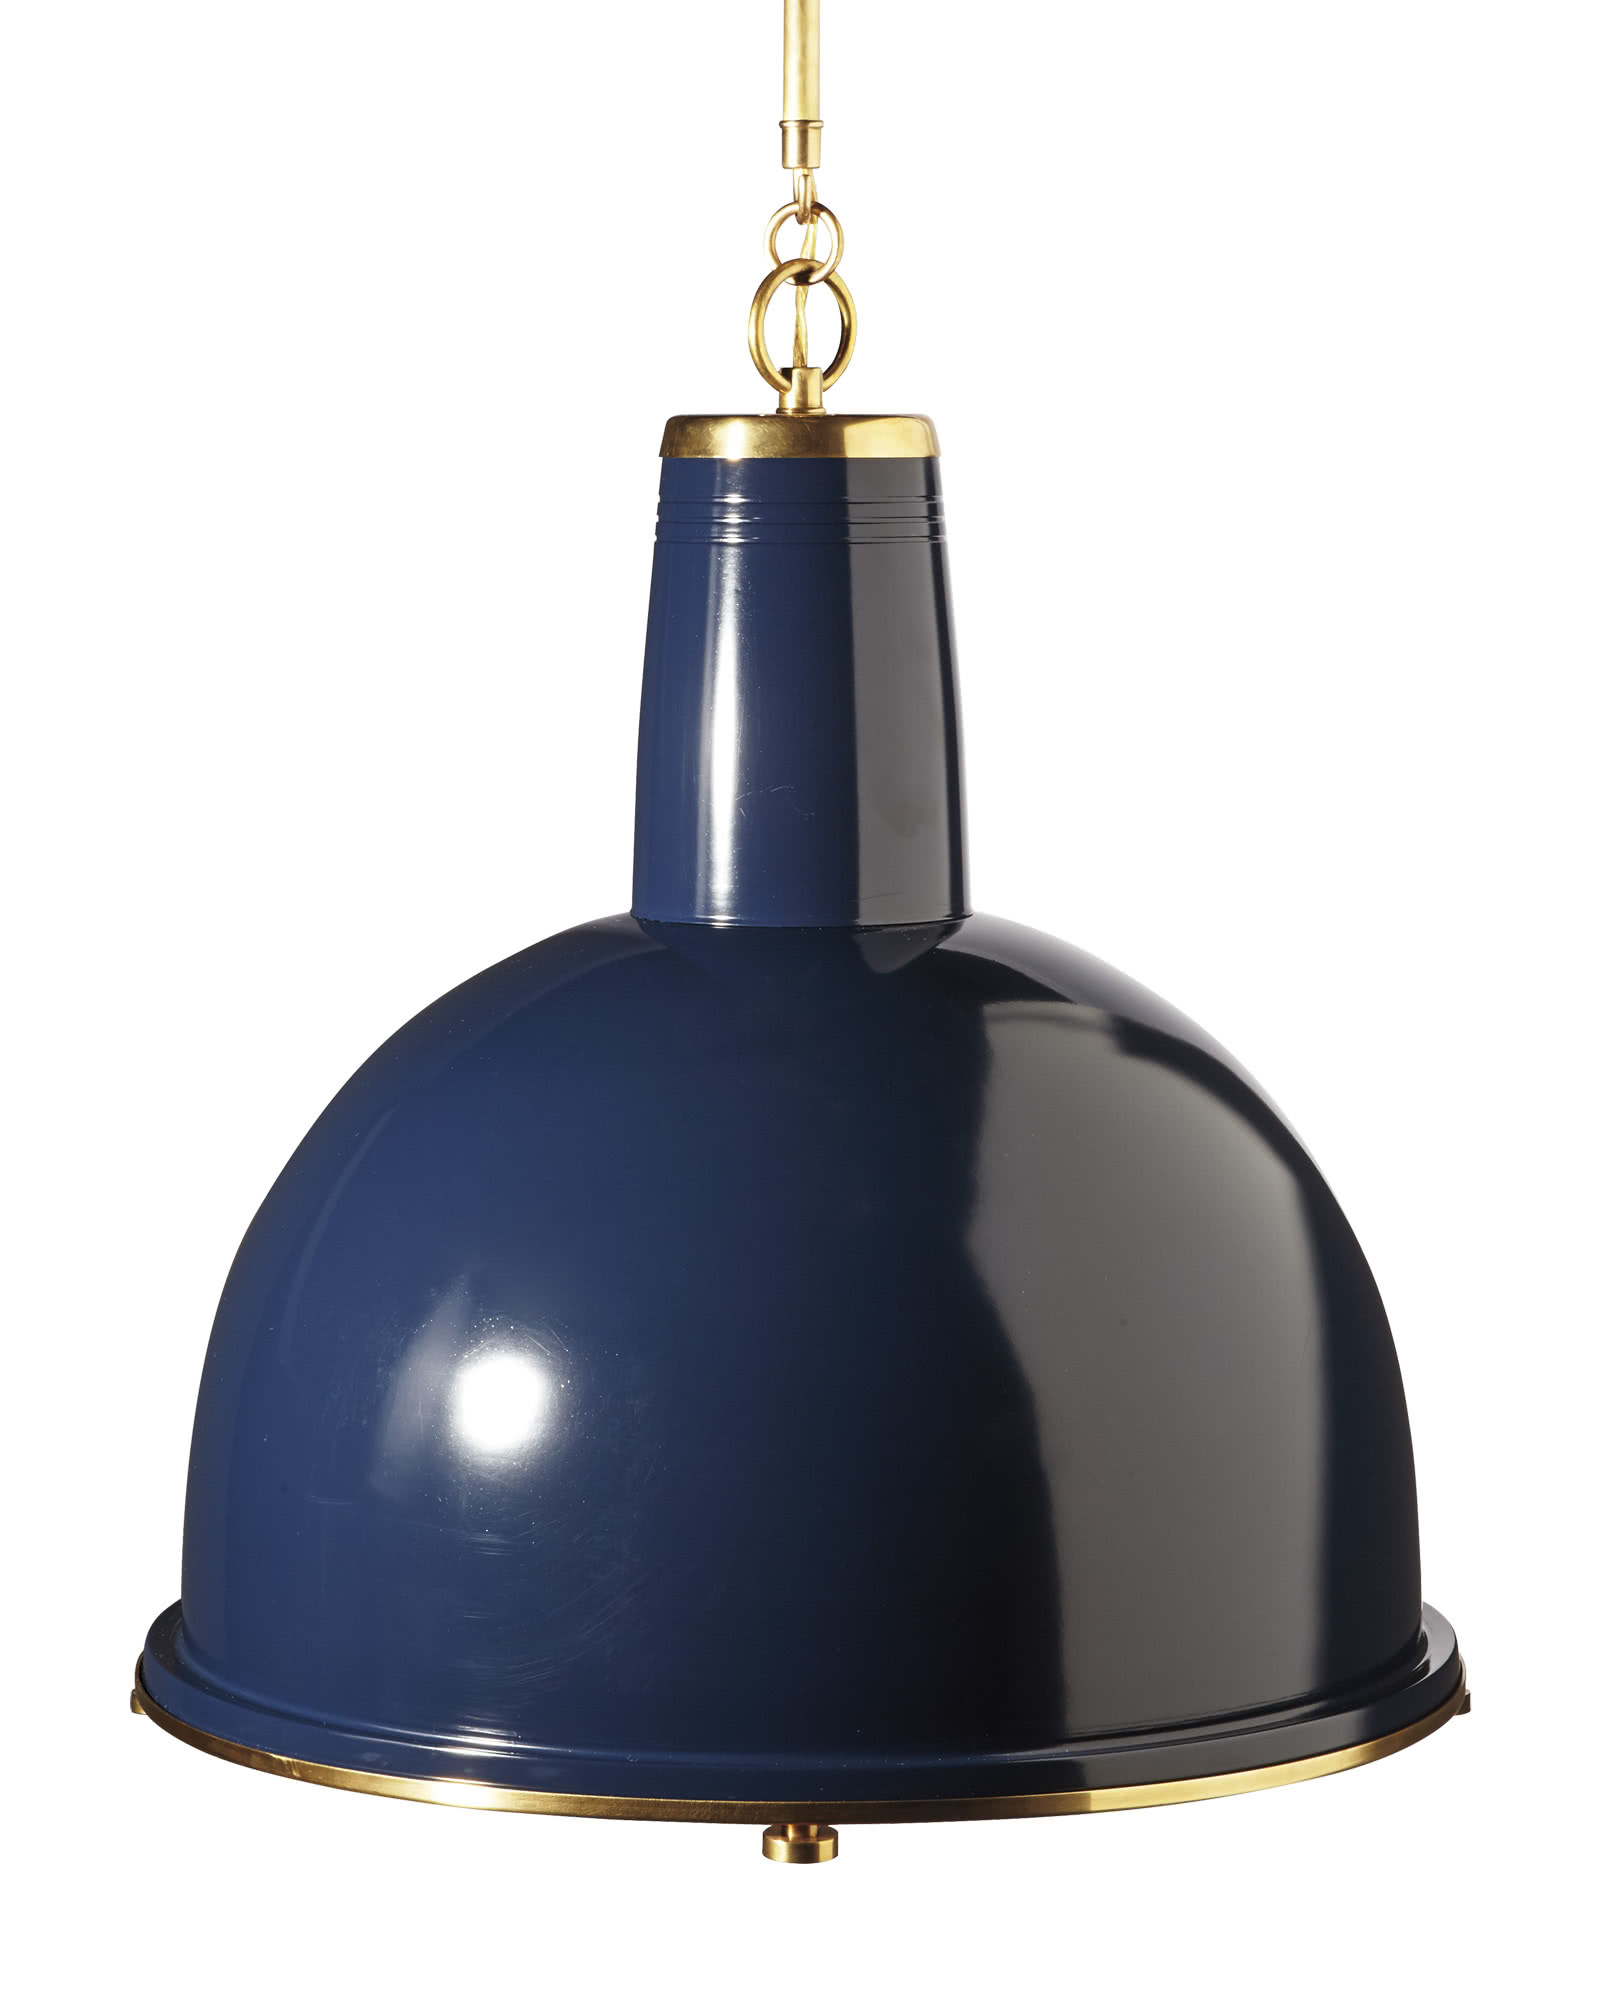 Lighting_Melrose_Pendant_Large_Navy_Reflection_MV_Crop_SH.jpg